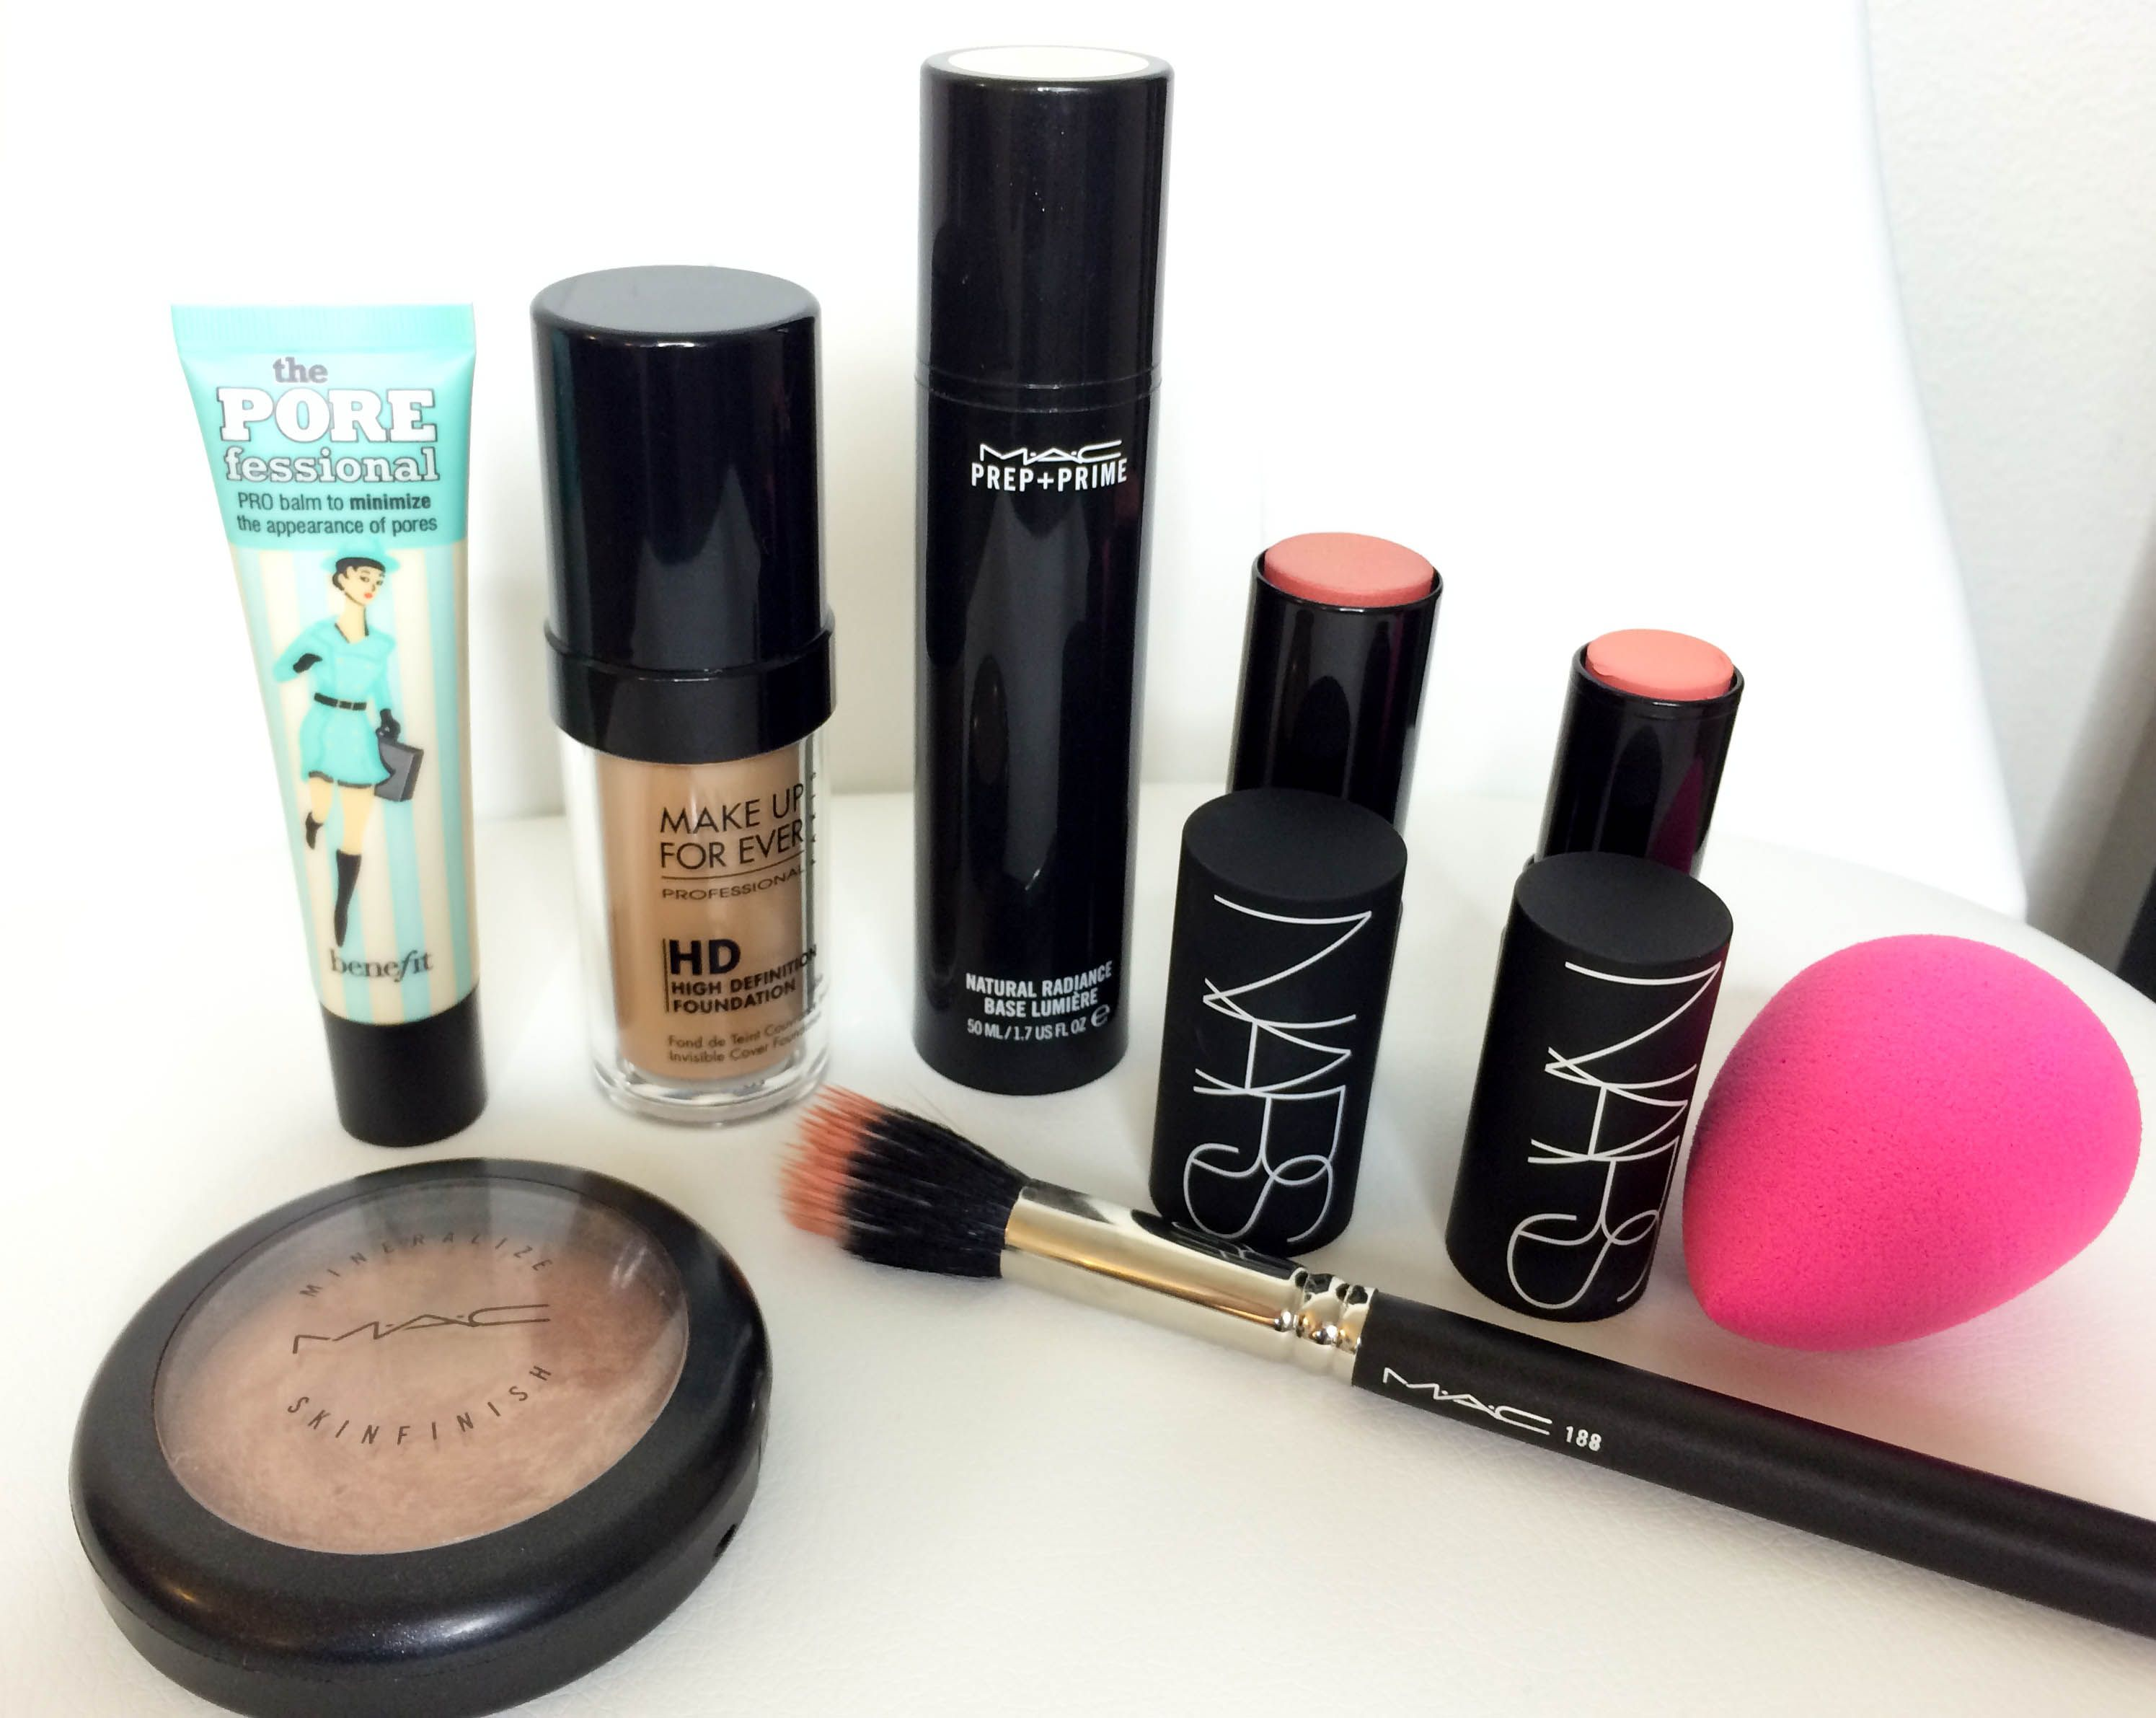 Summer Makeup for Flawless Foundation NARS, MC, Beauty